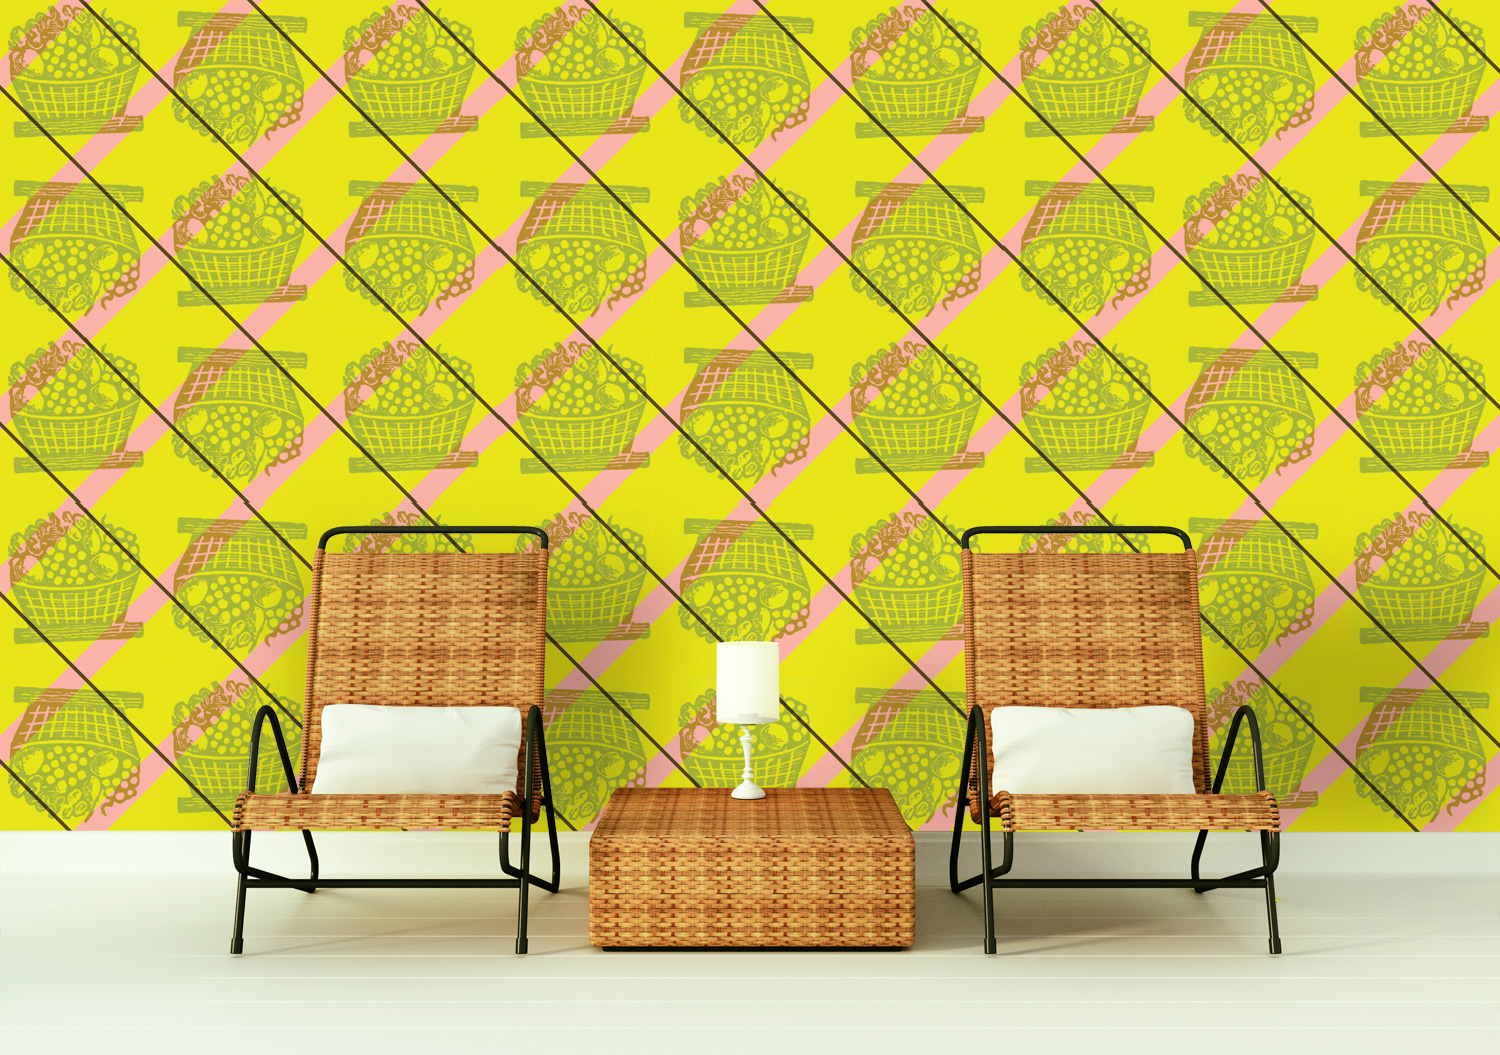 Wicker-Chairs-TUTTI-saffron.jpg